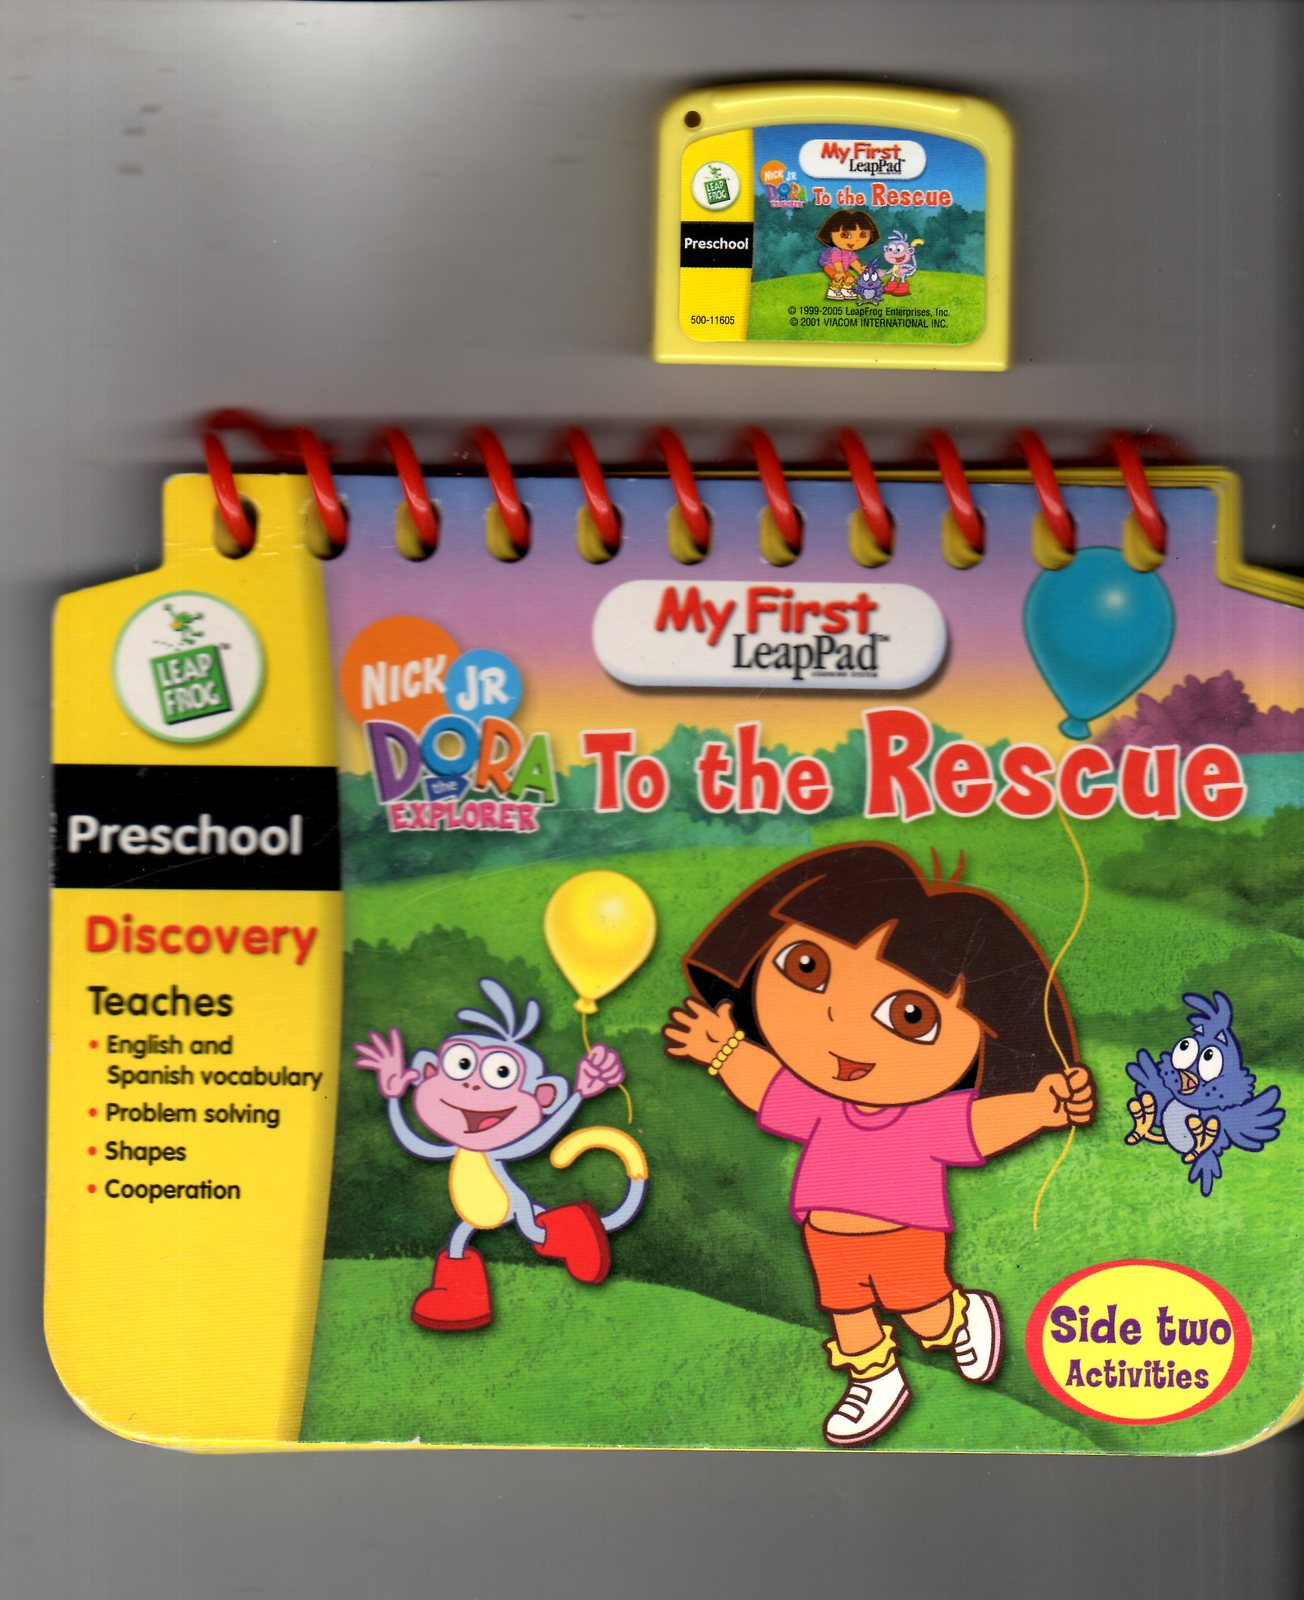 Leap Frog - My First LeapPad - Dora The Explorer To the Rescue